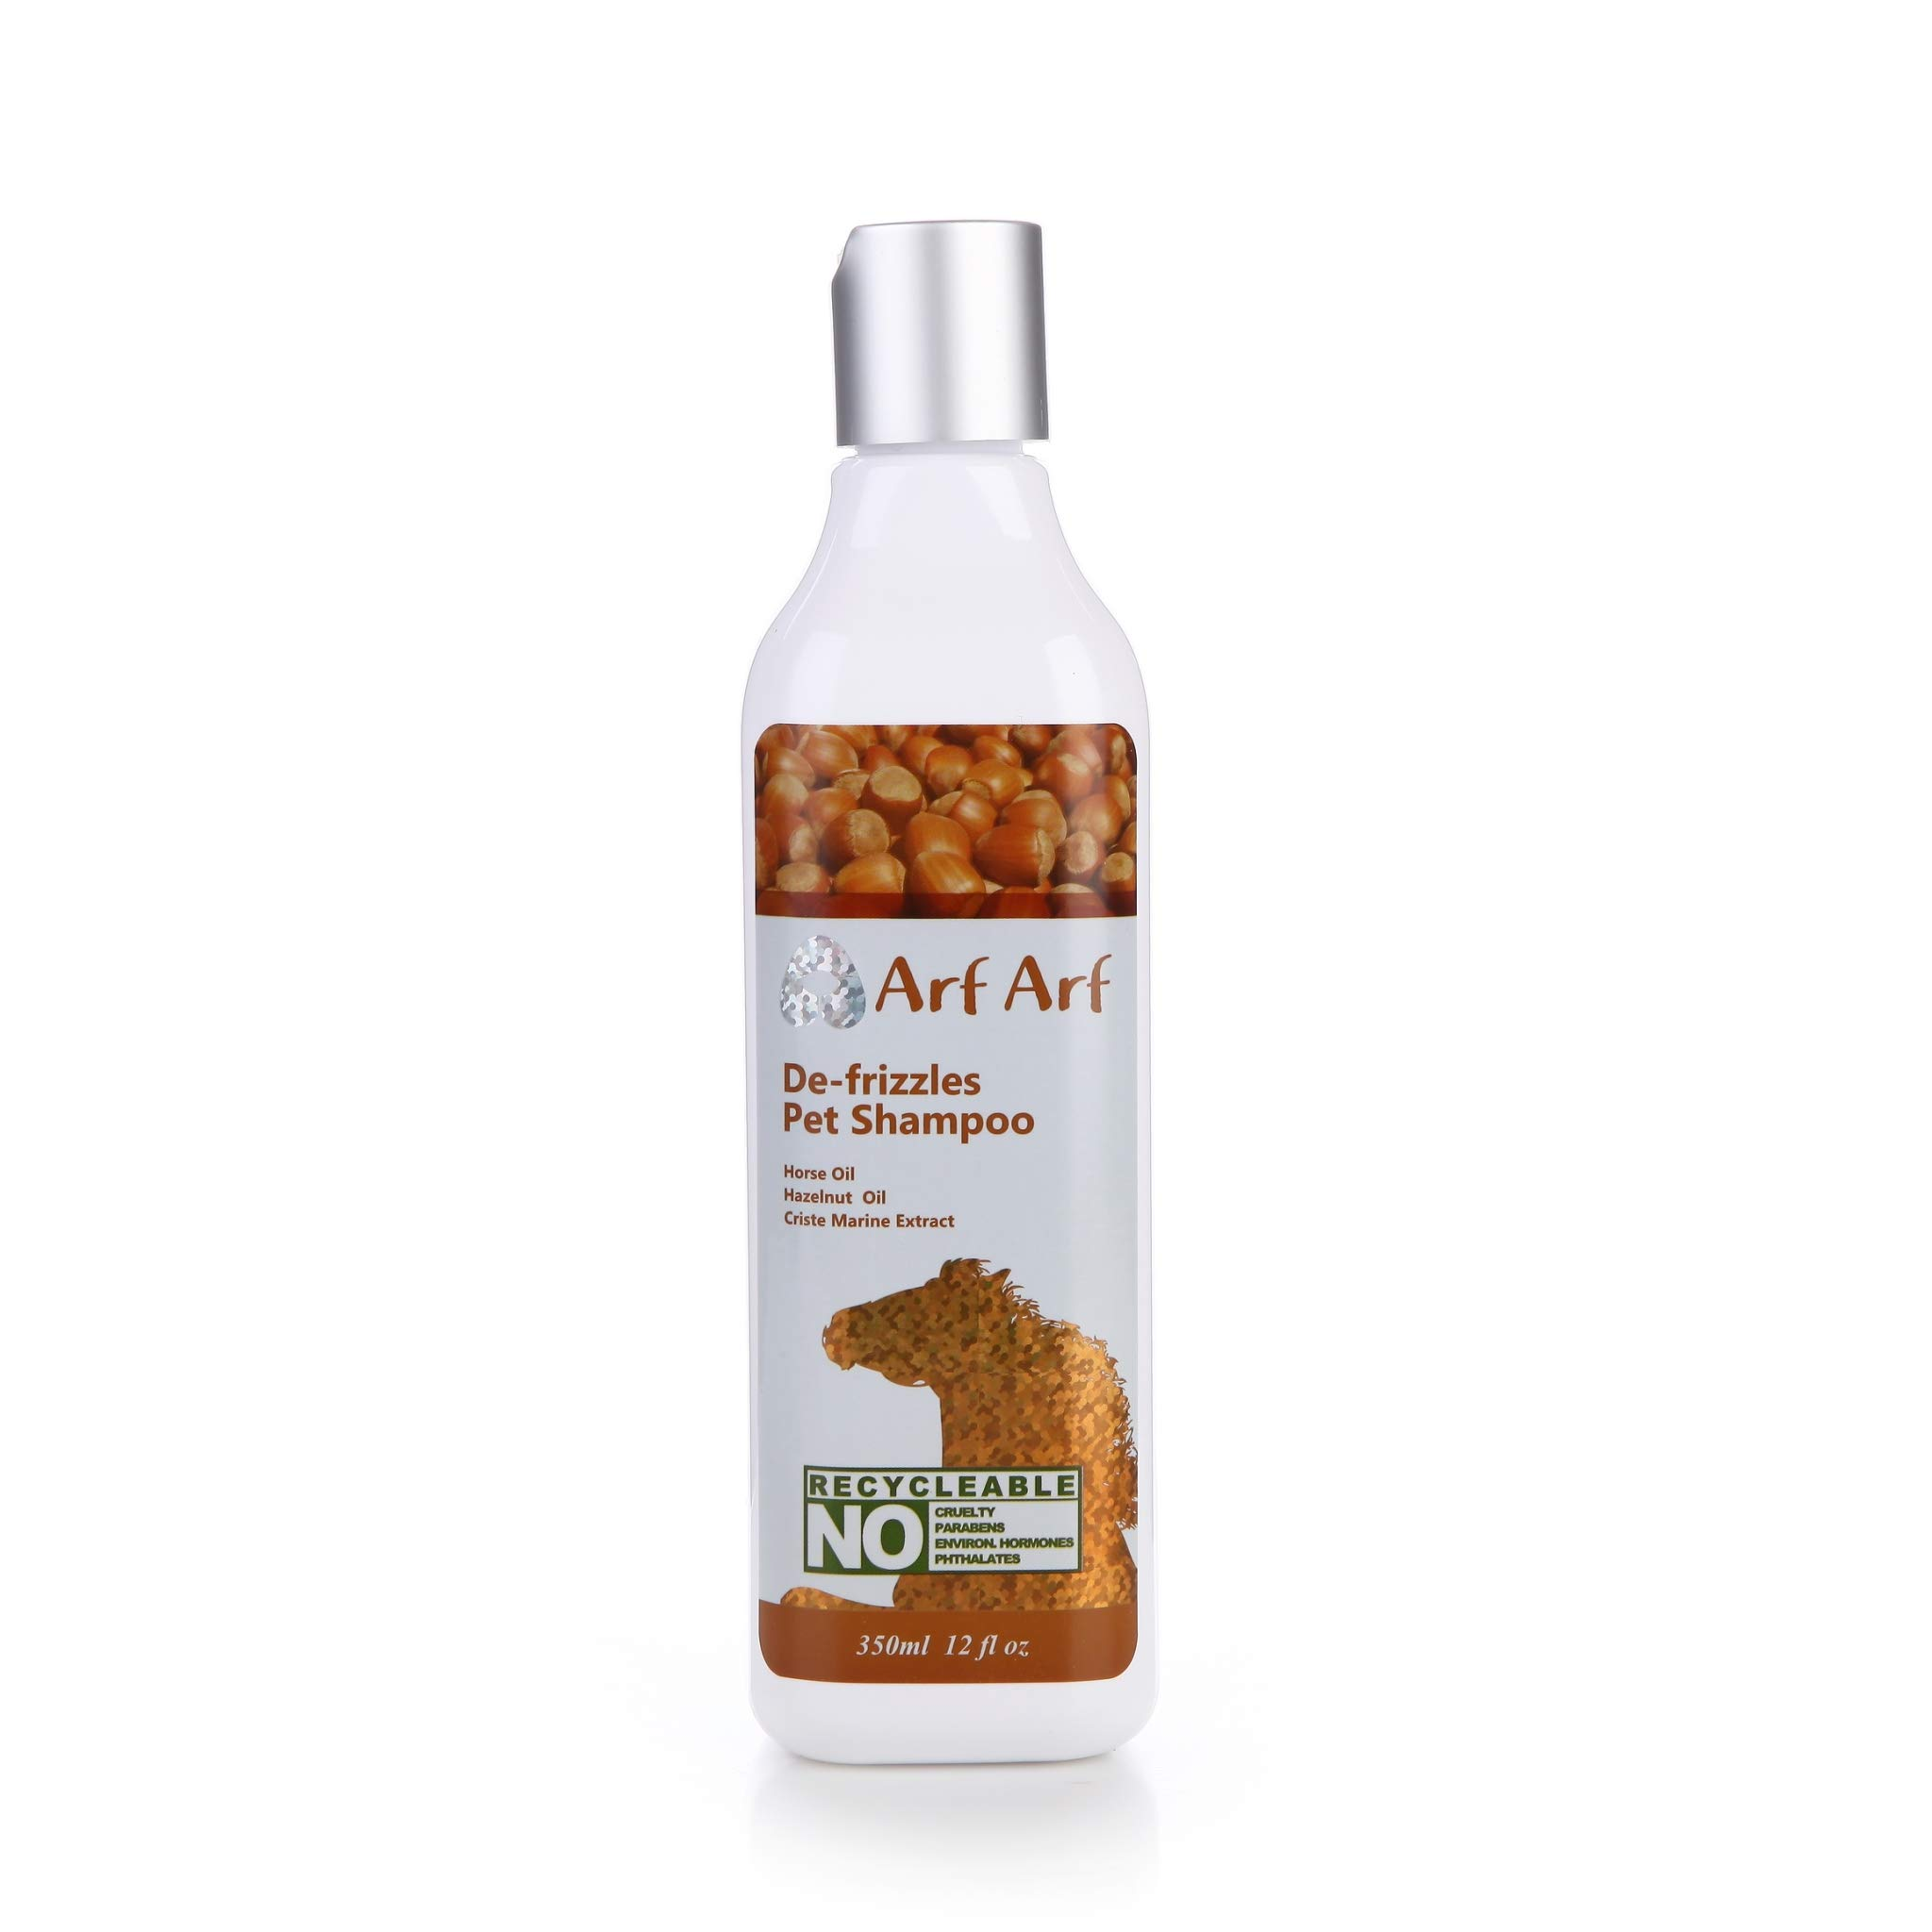 Arf Arf De-frizzles Pet Shampoo (For All Dogs & Cats) -Horse Oil, Hazelnut Oil, Criste Marine Extract, 13 Oz